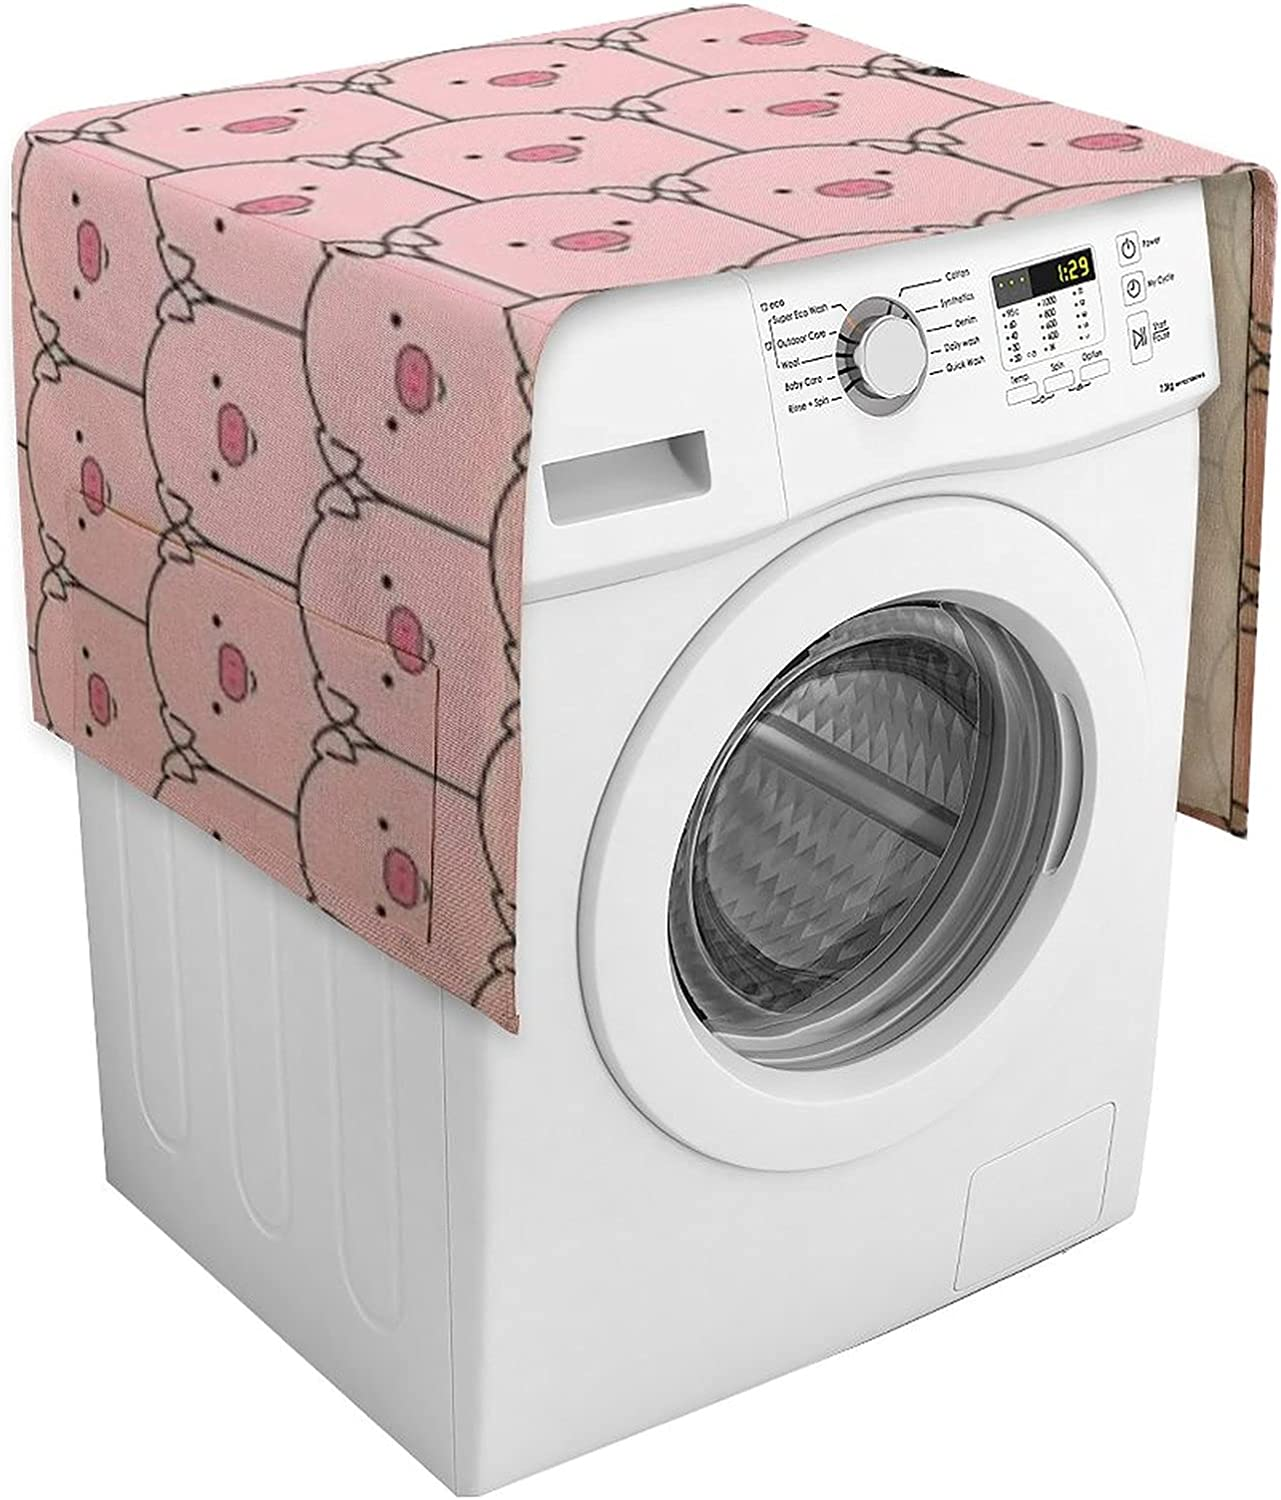 Multi-Purpose Washing Machine Covers Appliance Washer Protector Max 79% New products, world's highest quality popular! OFF